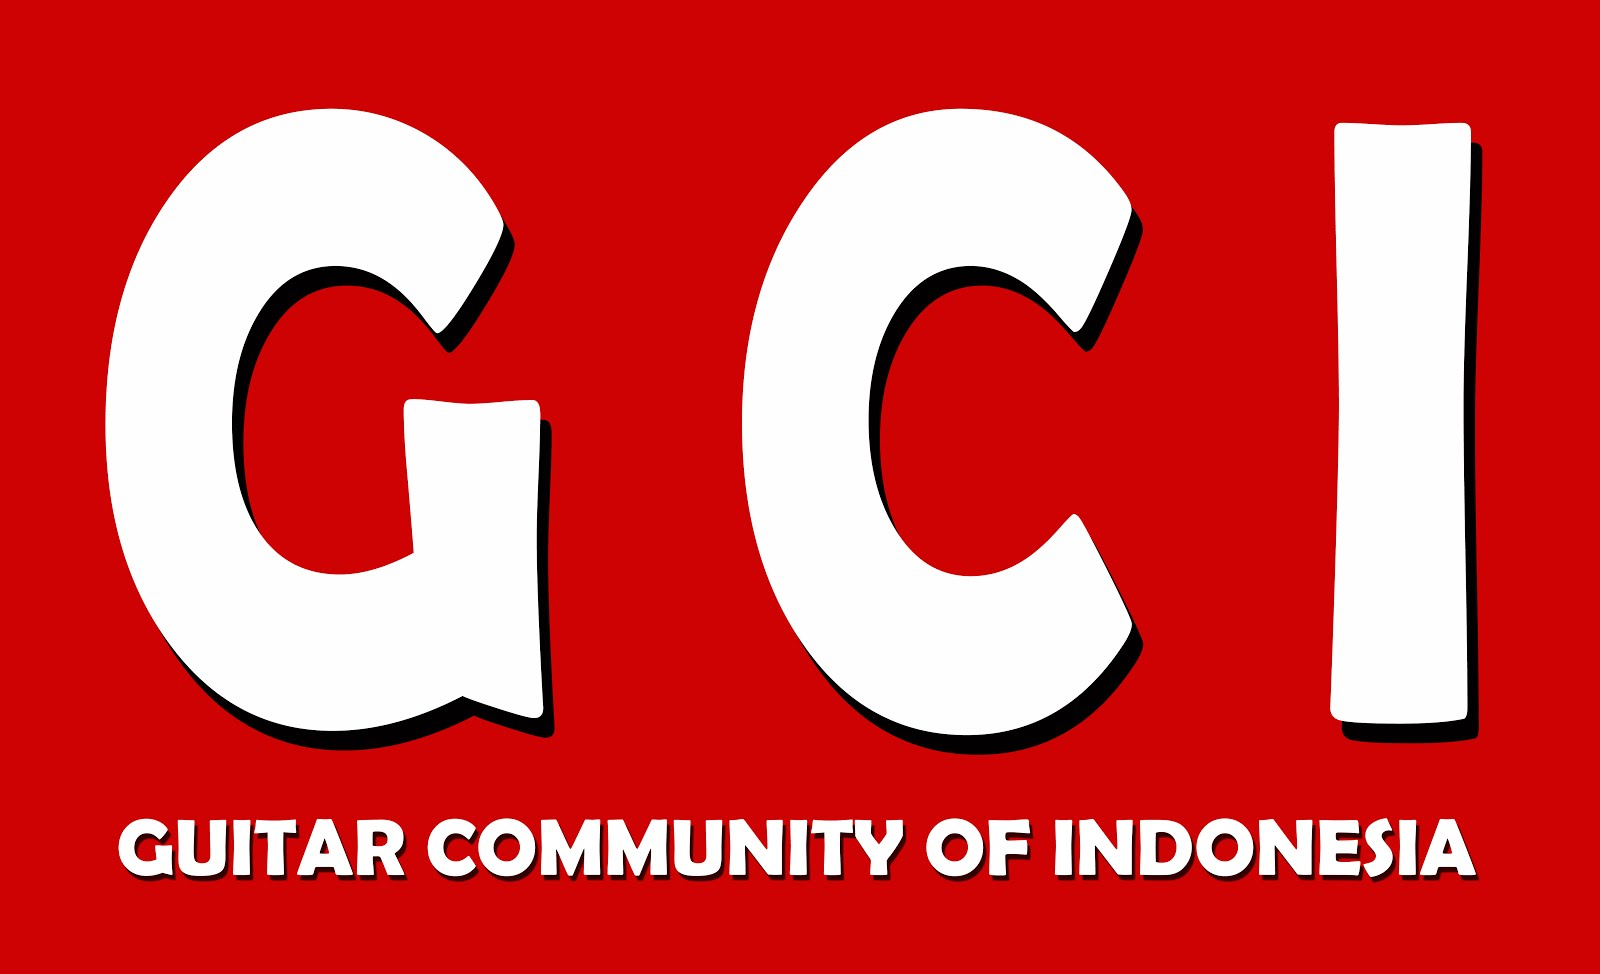 GUITAR COMMUNITY OF INDONESIA | GUITARGCI | GCI | KOMUNITAS GITAR